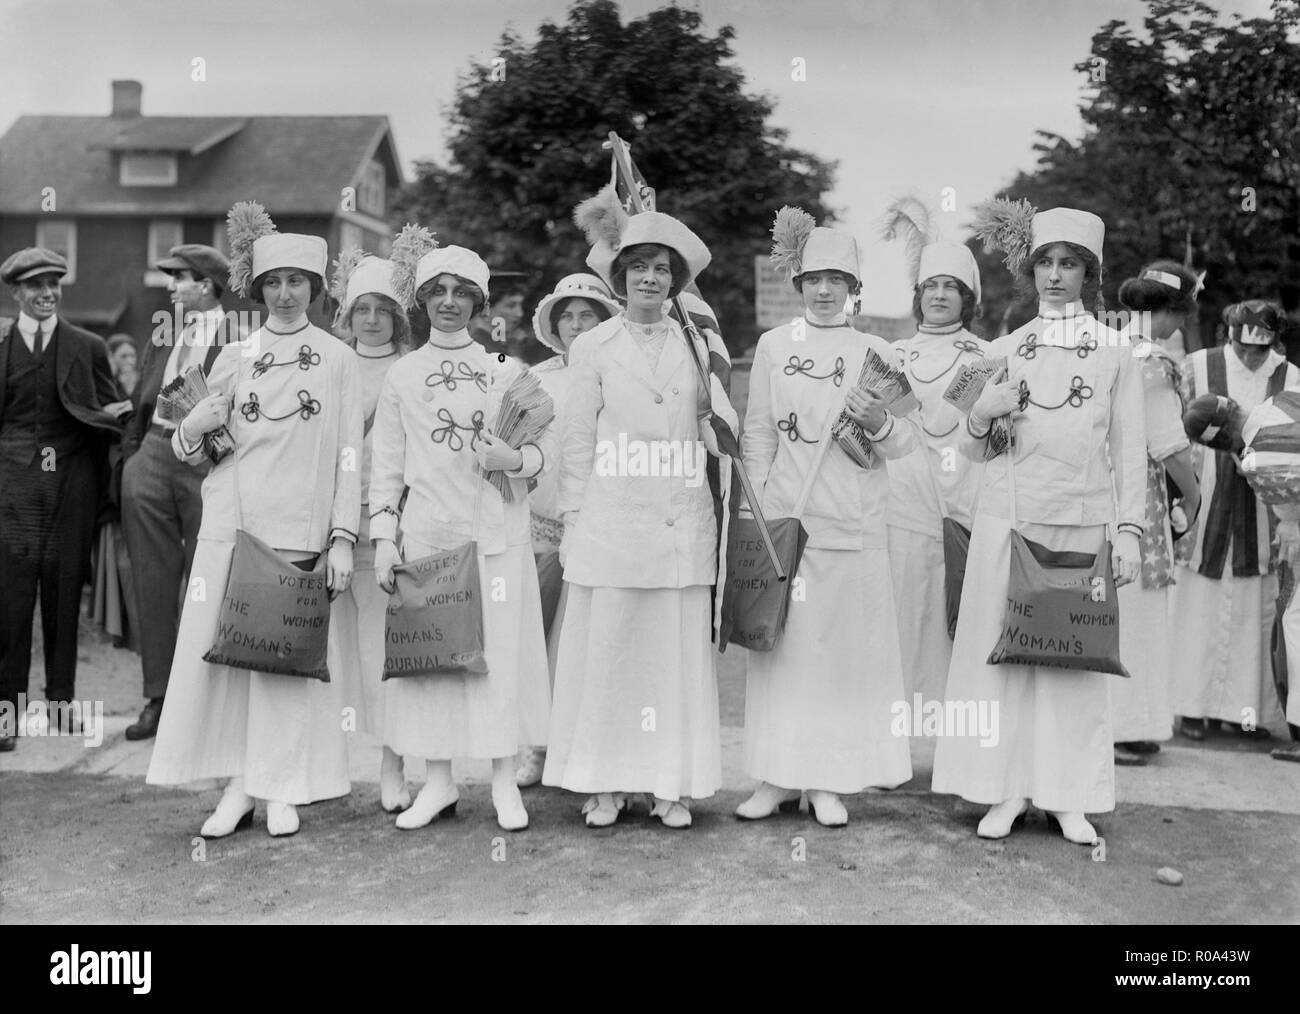 Elisabeth Freeman (center holding American flag) with Suffrage News Girls, Bains News Service, May 1913 - Stock Image